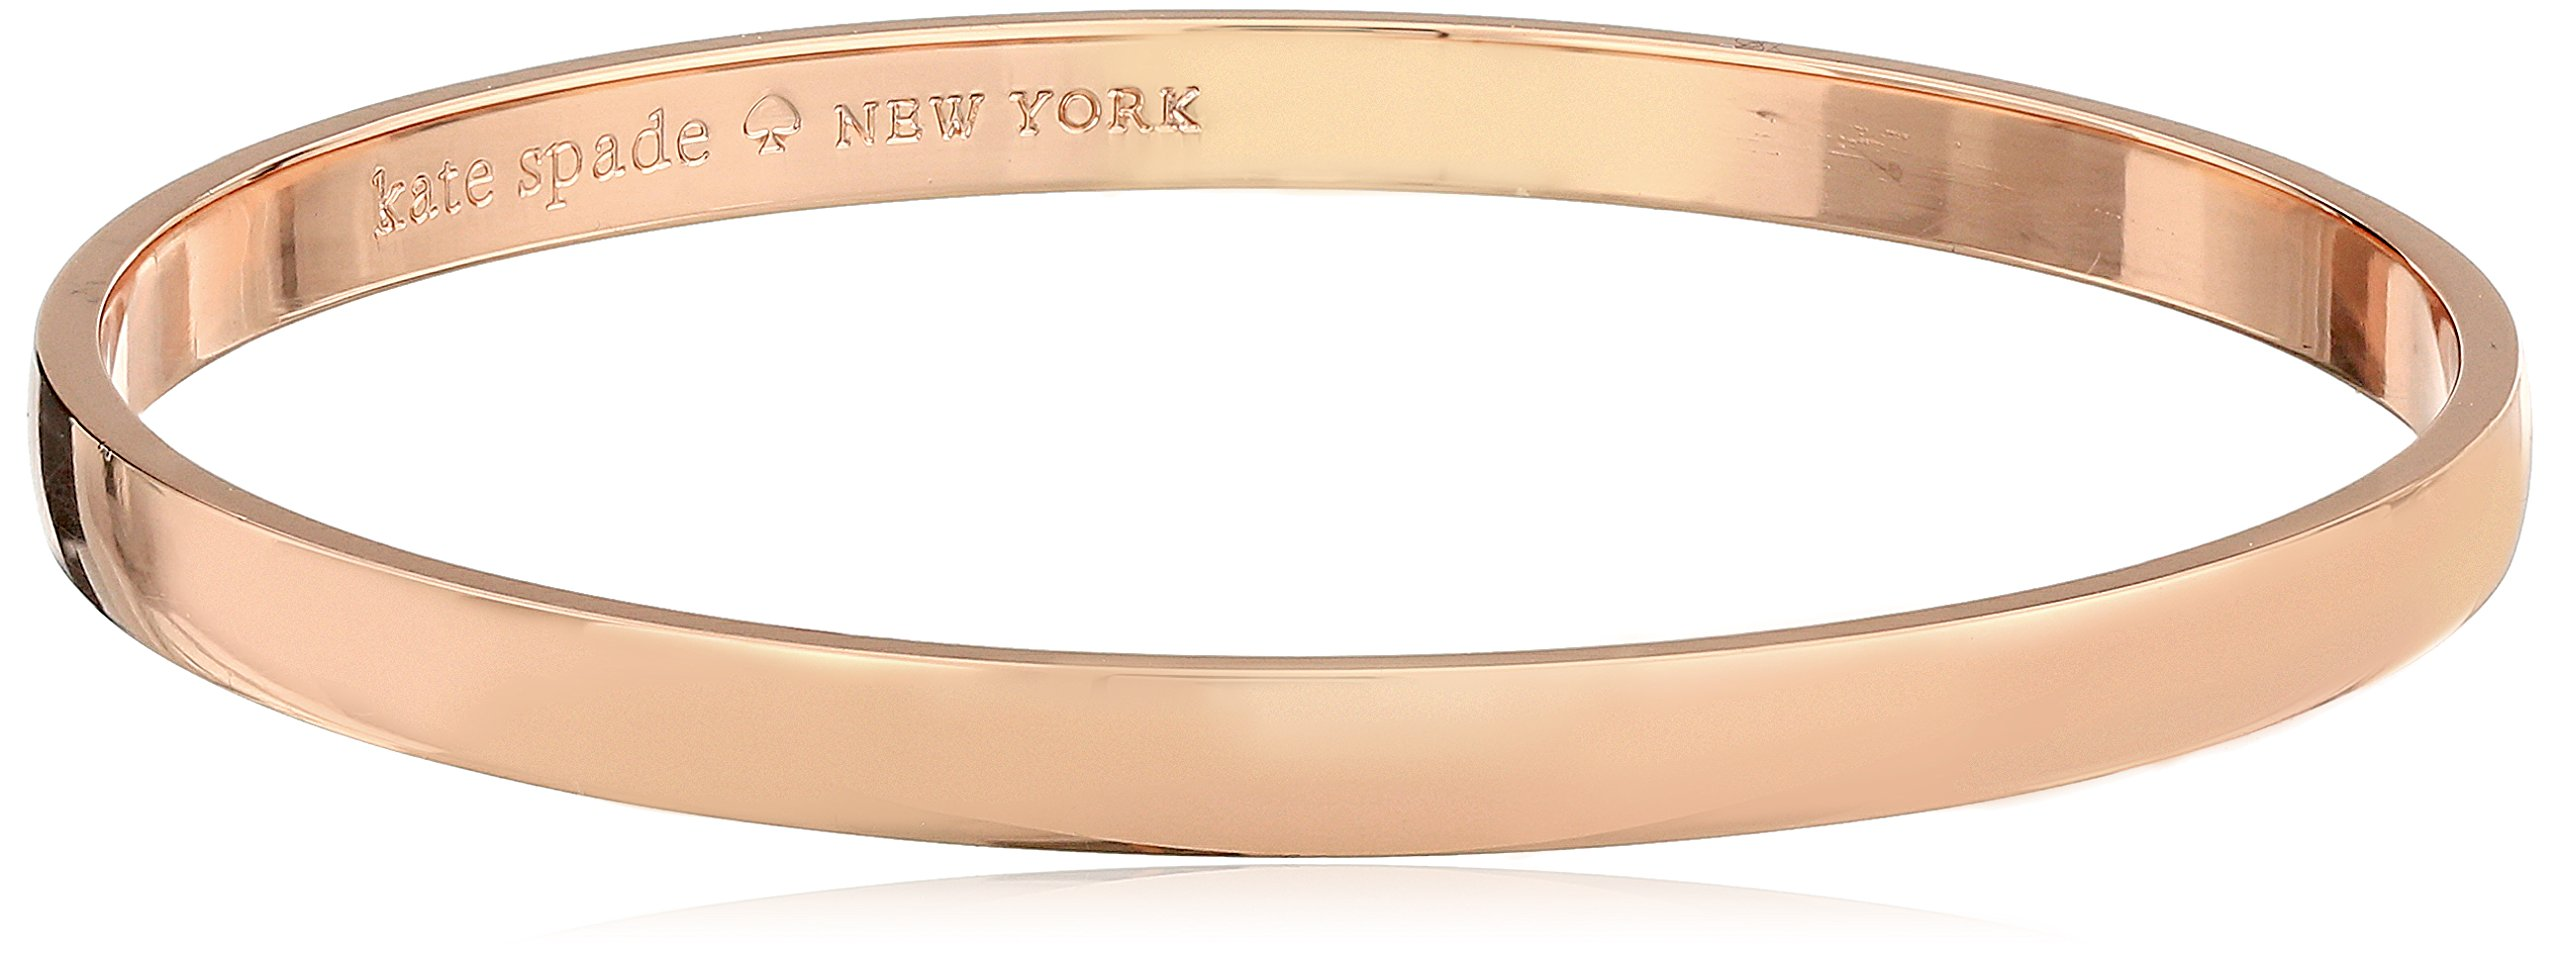 kate spade new york Idiom Bangles Stop and Smell The Roses Solid Bangle Bracelet by Kate Spade New York